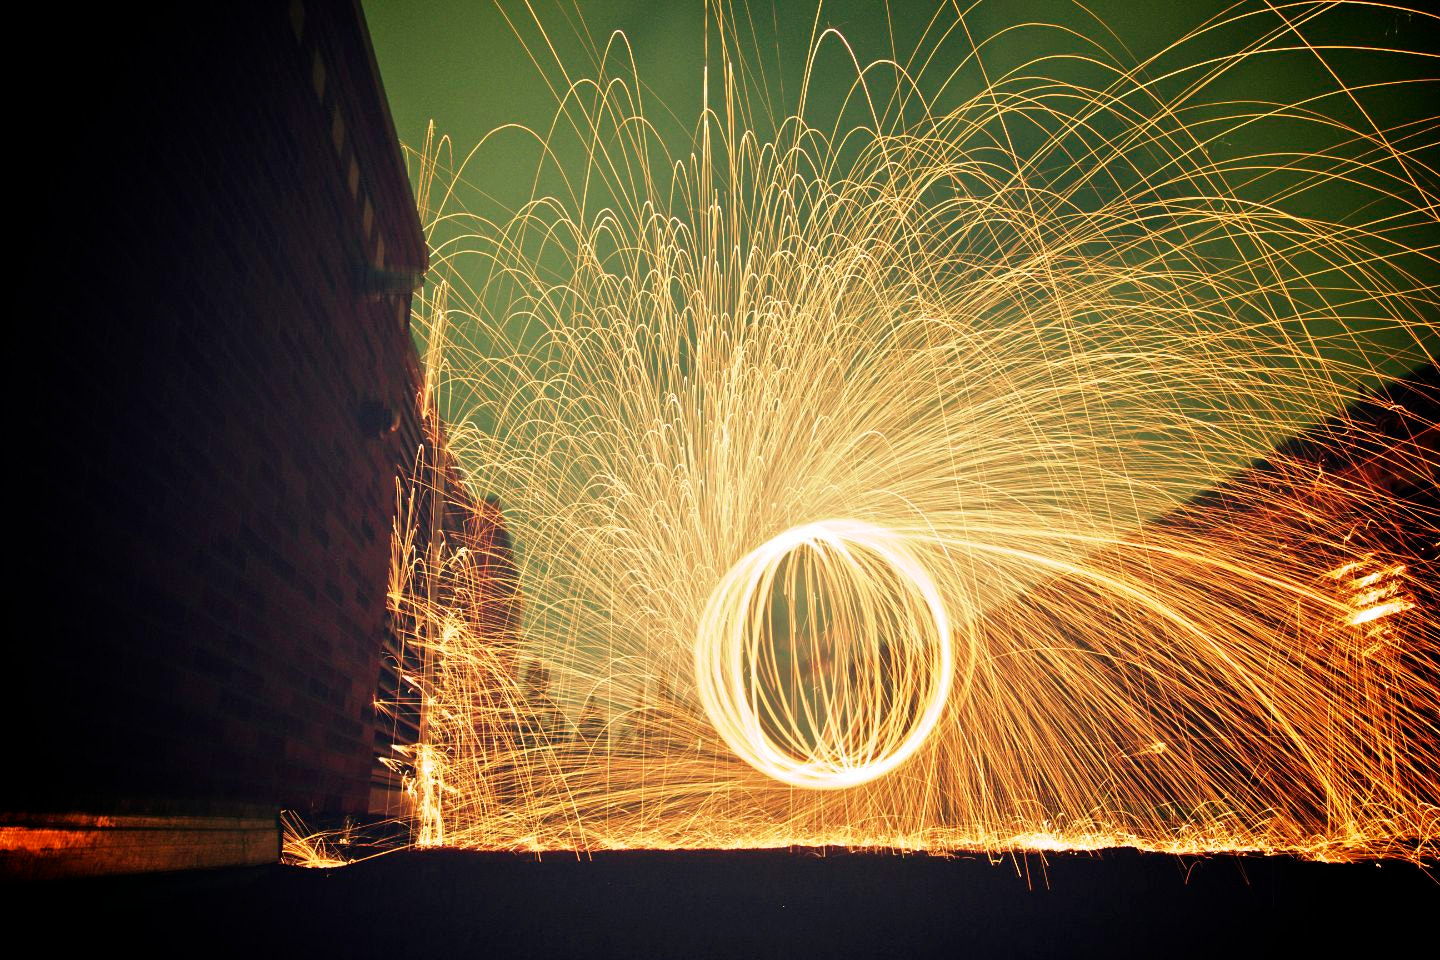 Photograph steel wool 8843 by Xavier Rodriguez Magaña on 500px